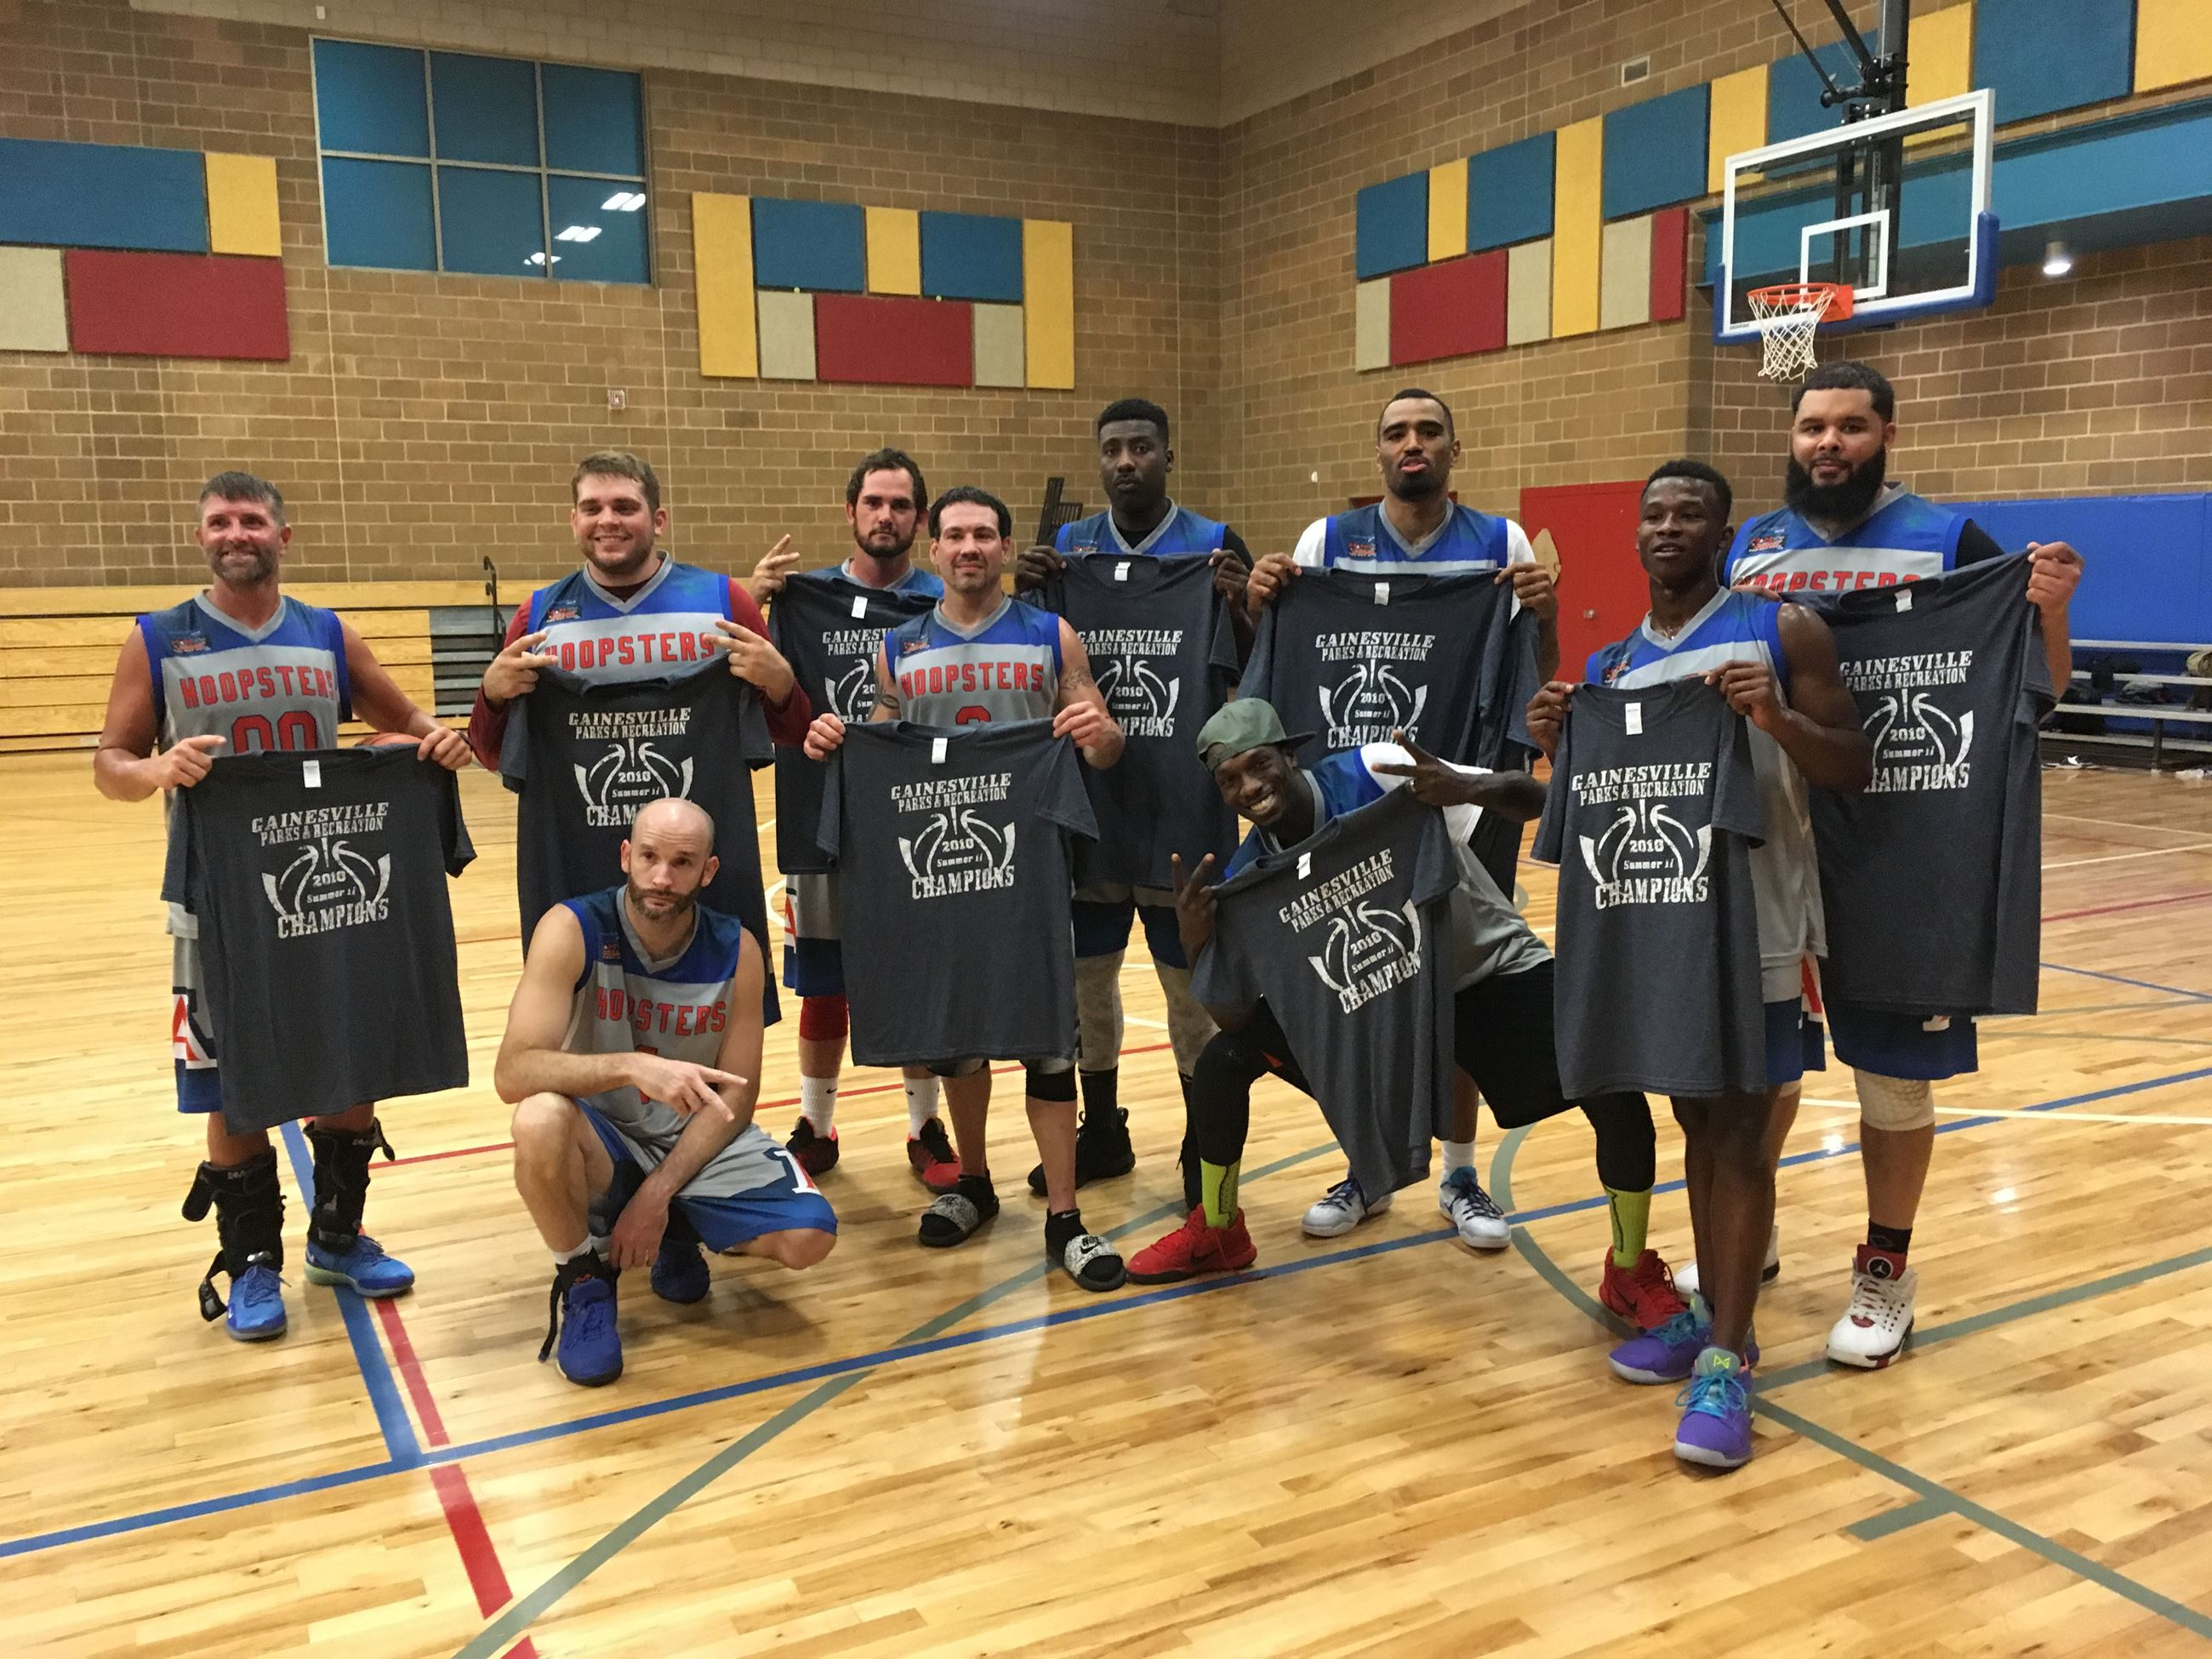 2018 Summer II Mens Basketball Champs